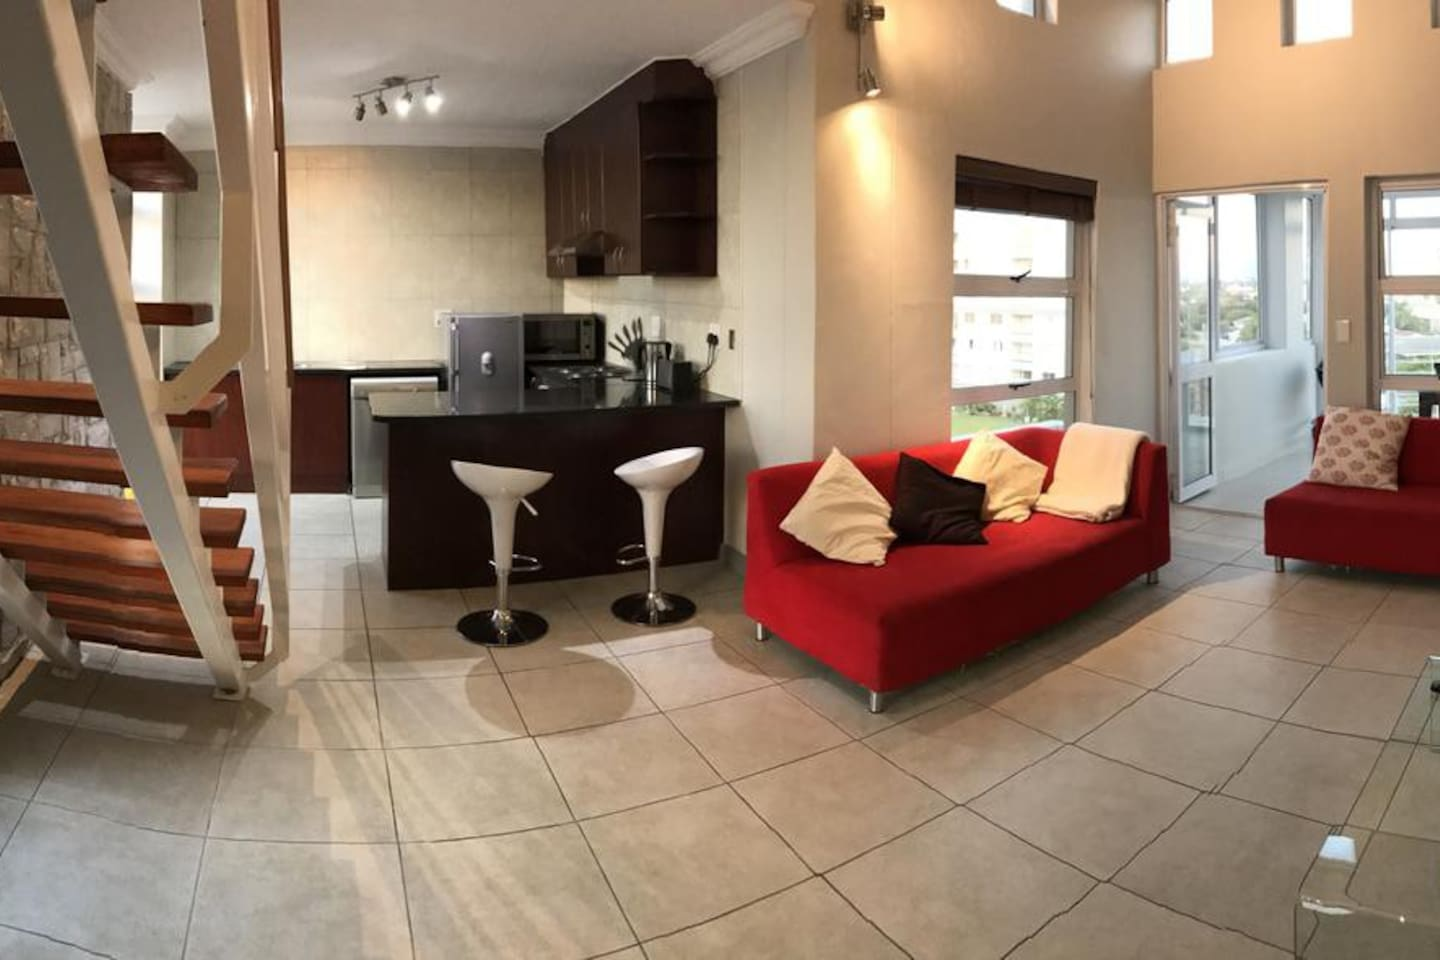 A spacious, modern, open-plan living area leads onto two bedrooms with shared bathroom and a staircase leads to the main ensuite bedroom and study upstairs.